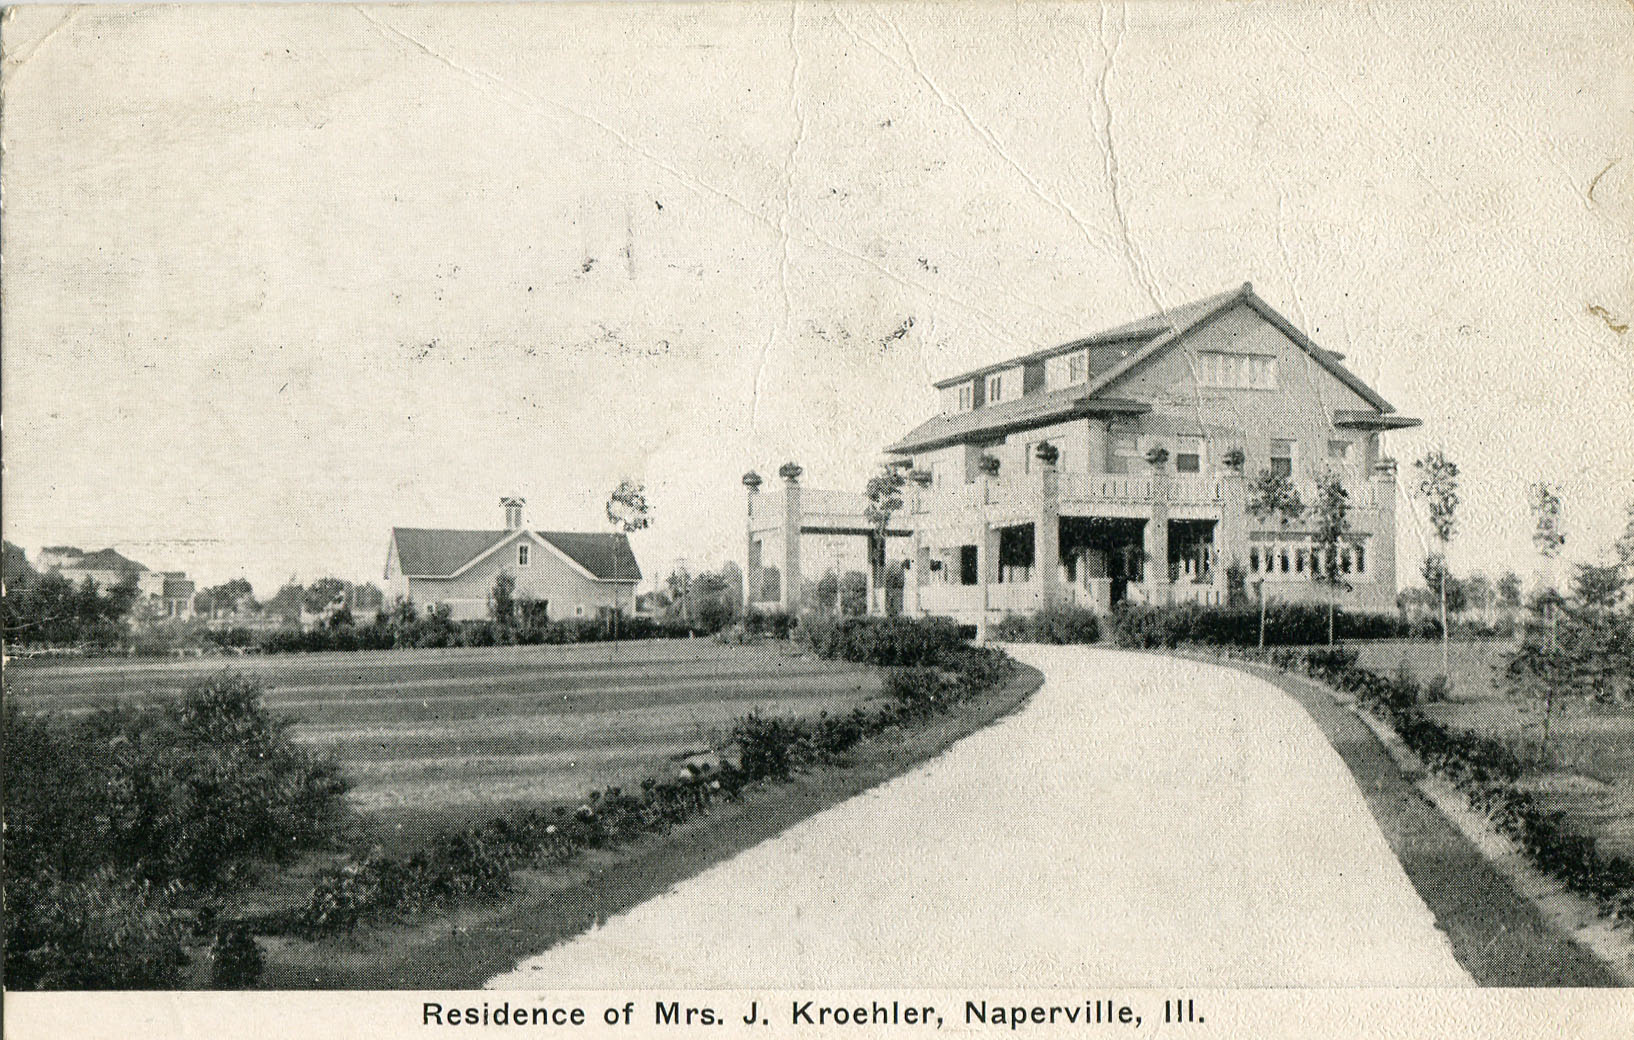 Postcard view of Mrs. J. Kroehler's home